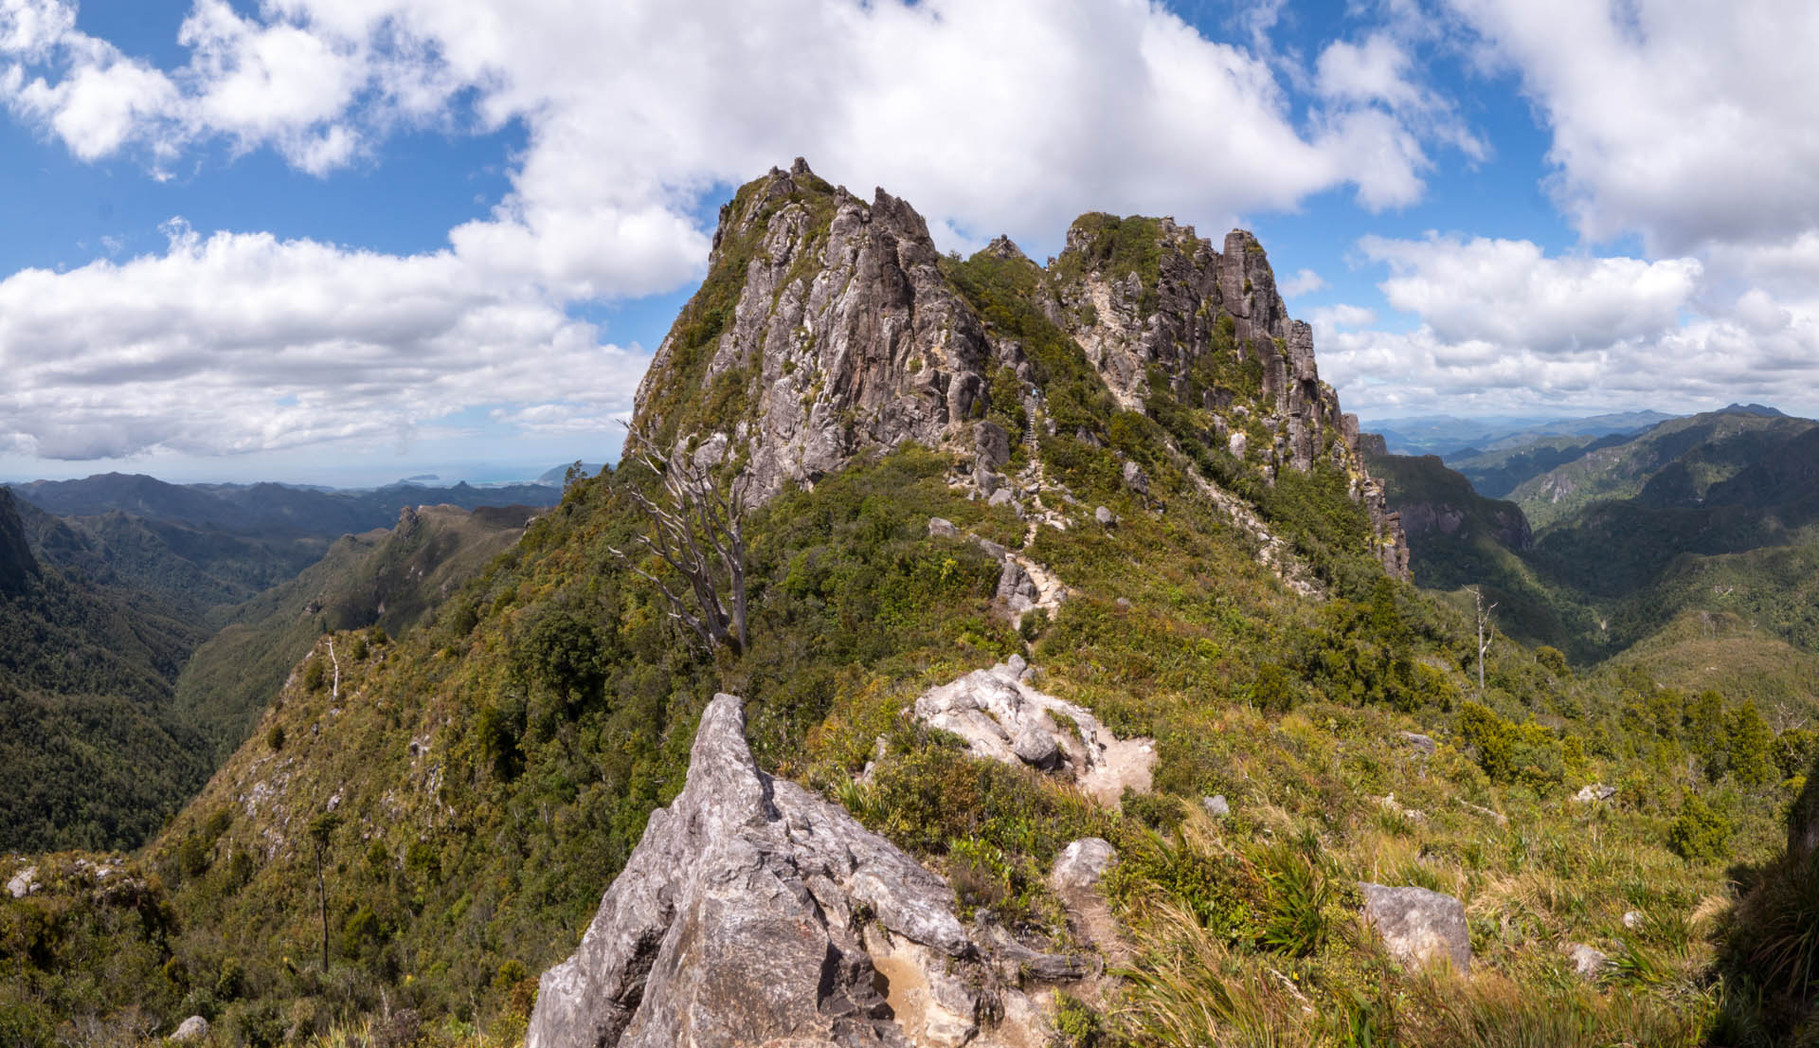 Coromandel Forest Park - Pinnacles